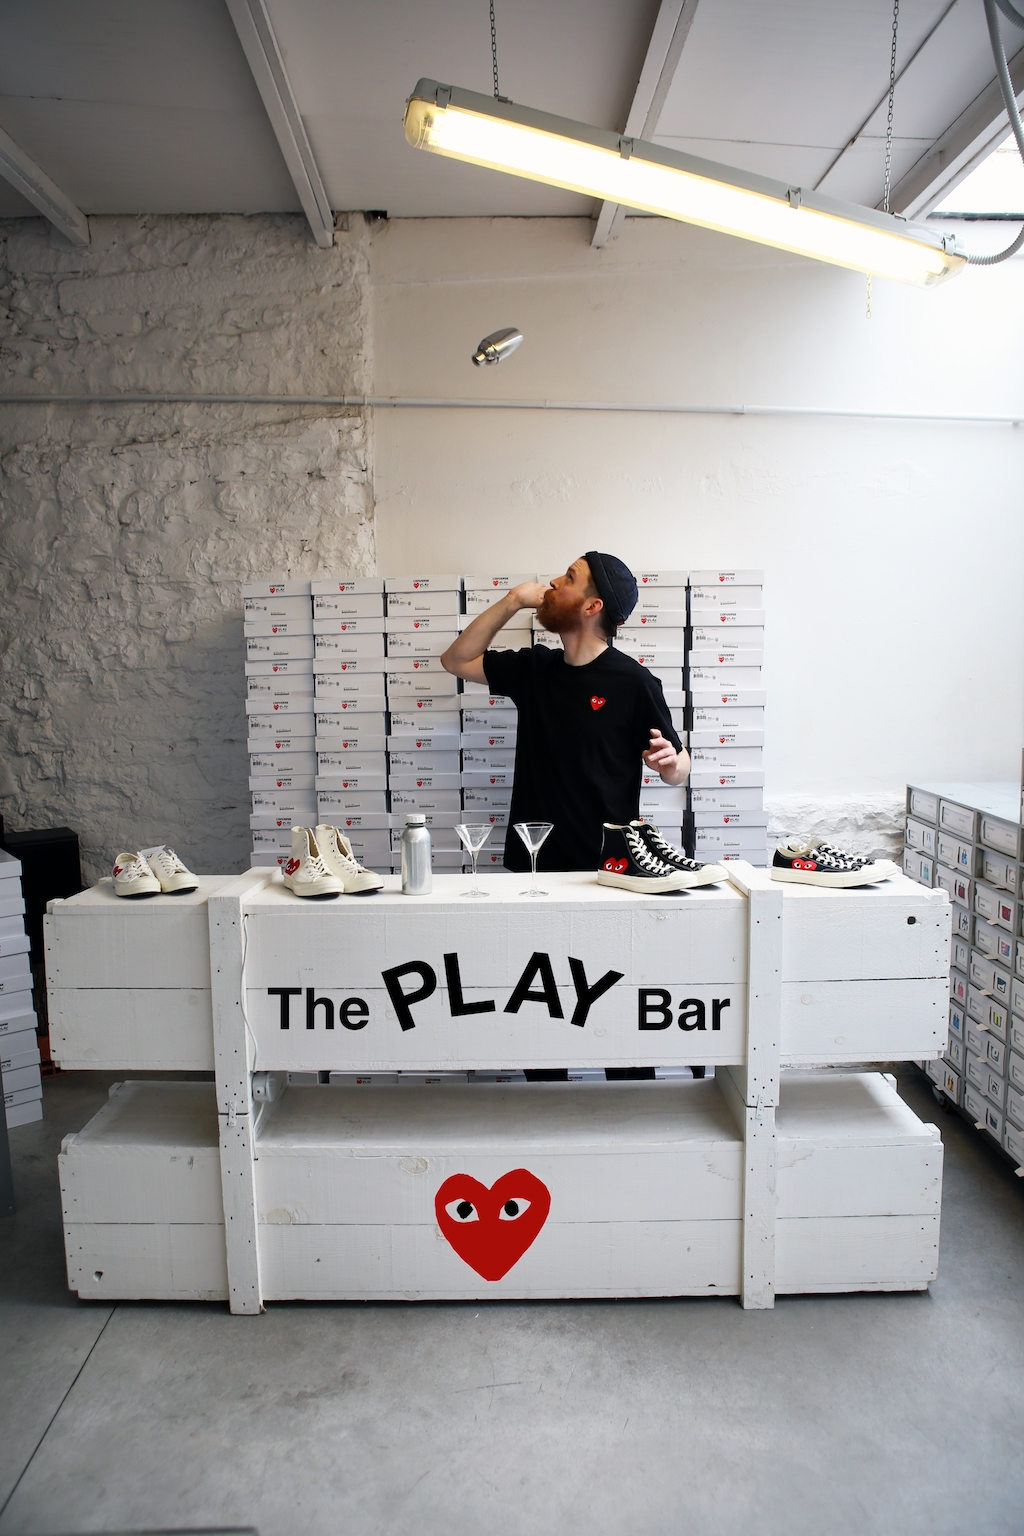 The Play Bar